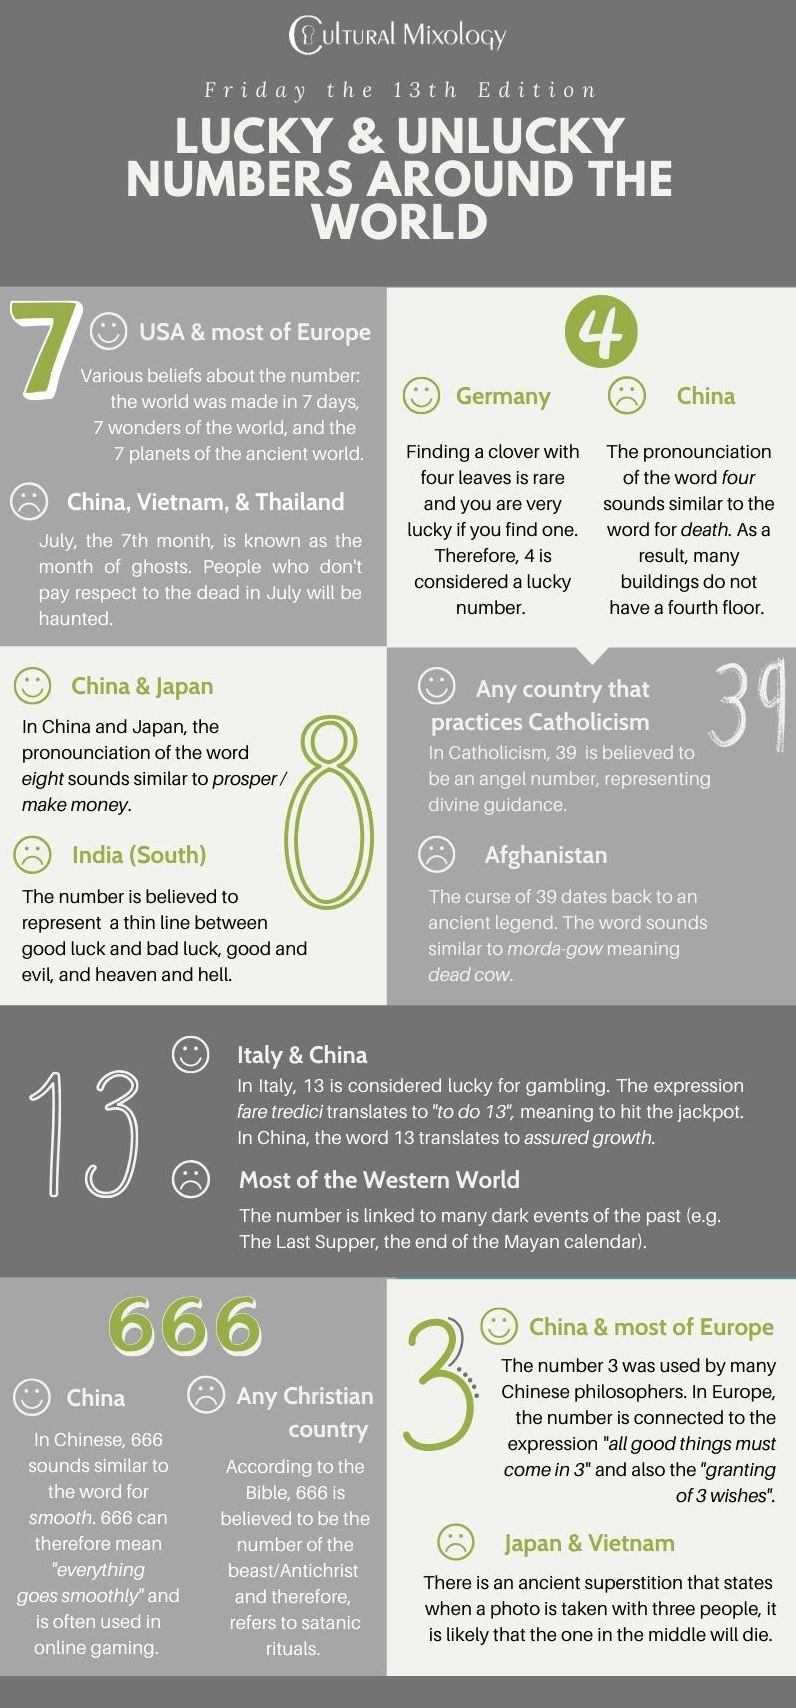 Infographic about lucky and unlucky numbers around the world.